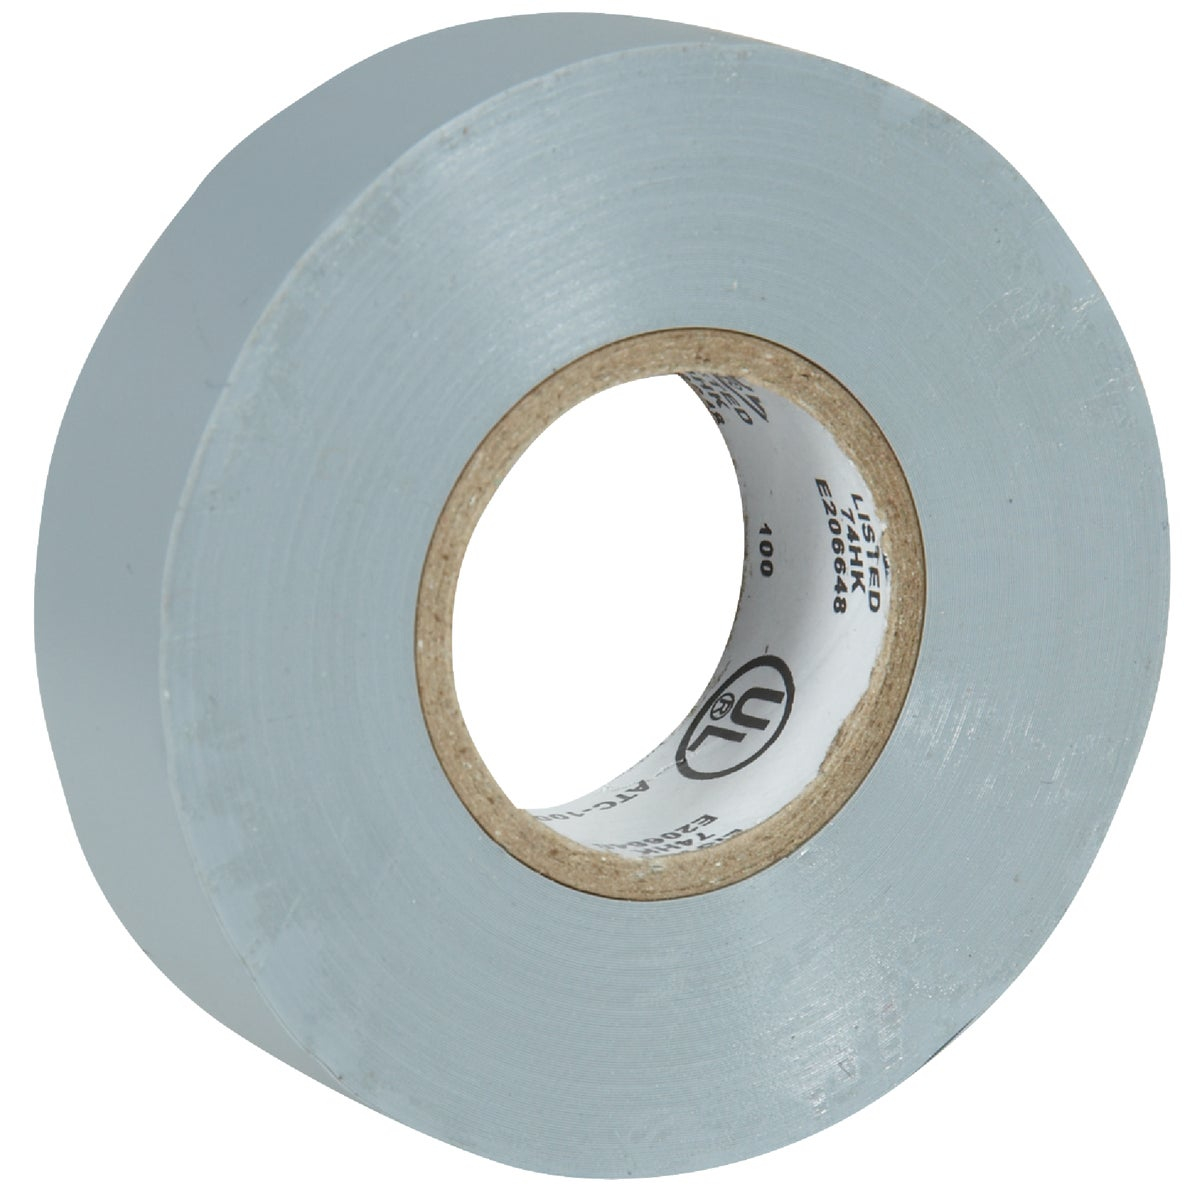 GRAY ELECTRICAL TAPE - 515183 by Do it Best